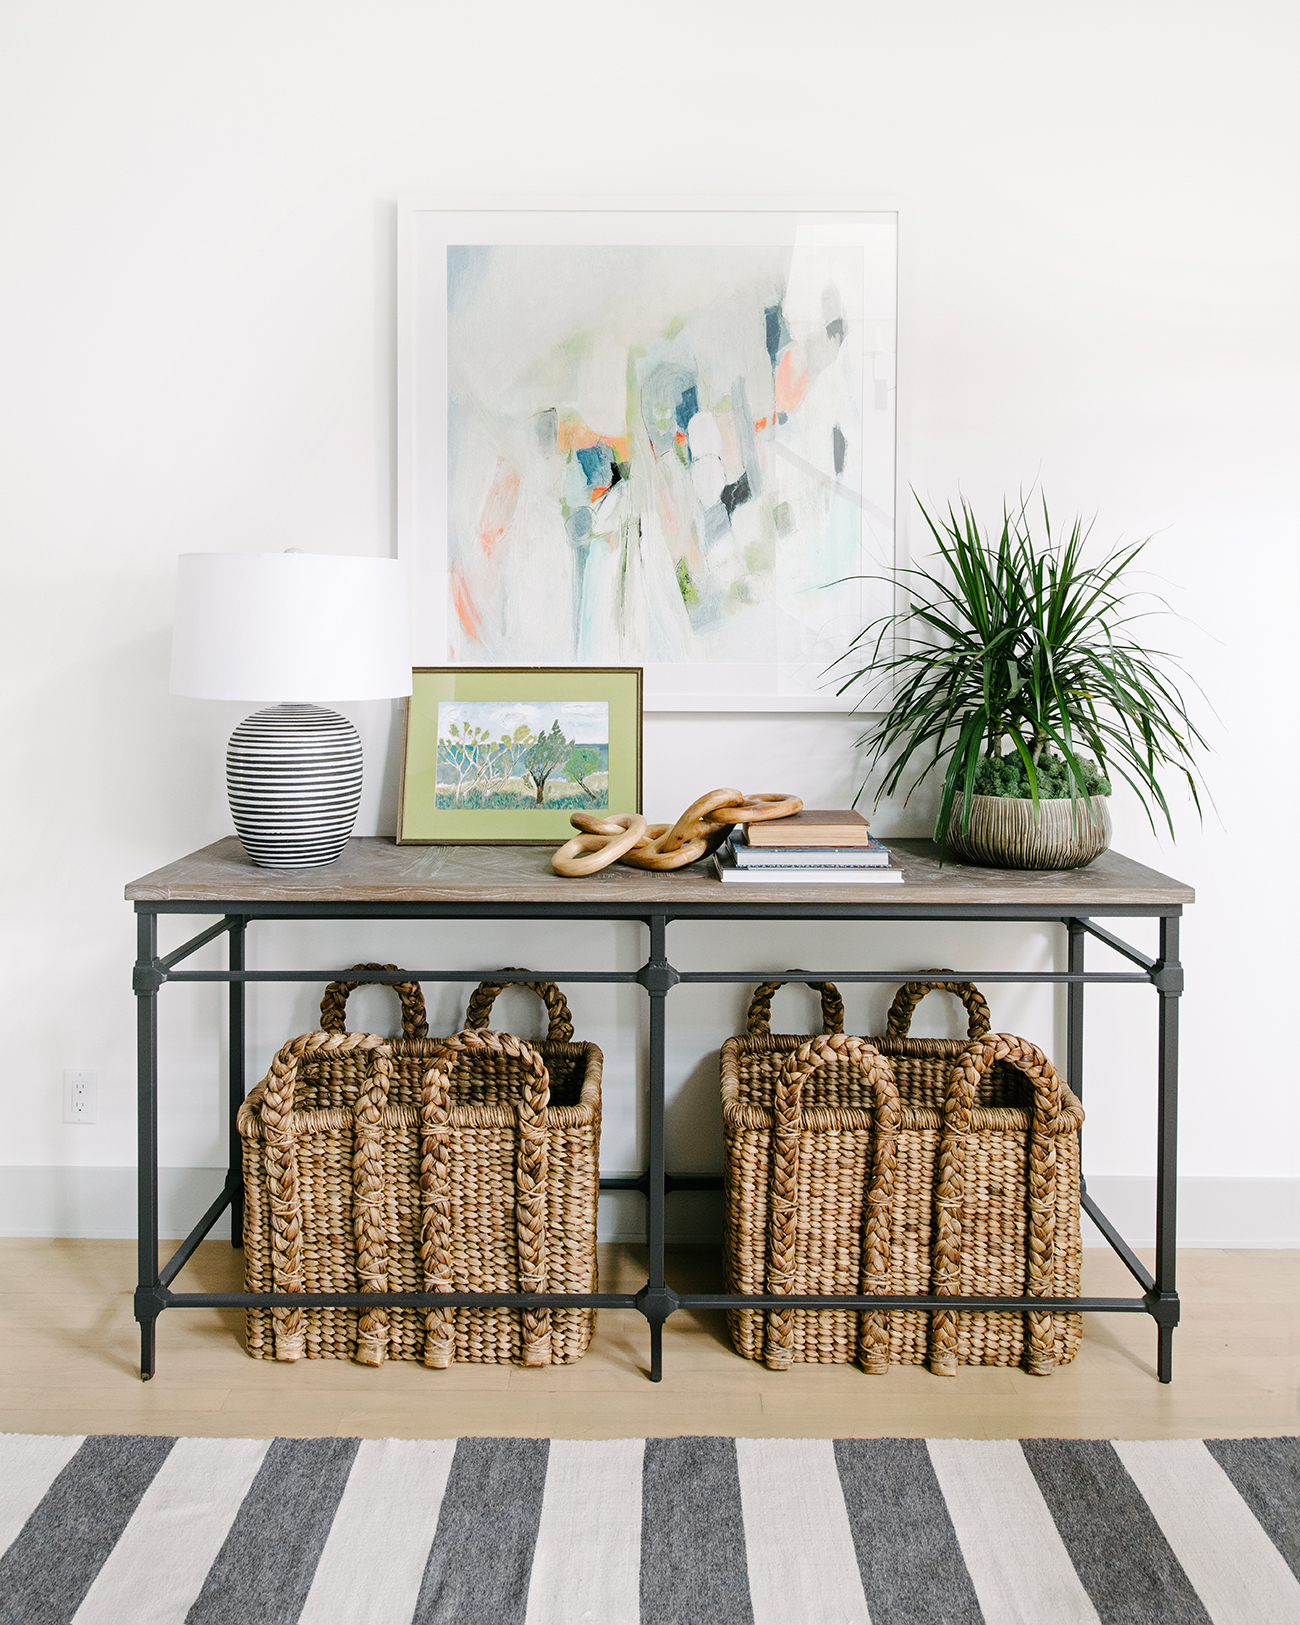 southern california house hallway table with baskets underneath